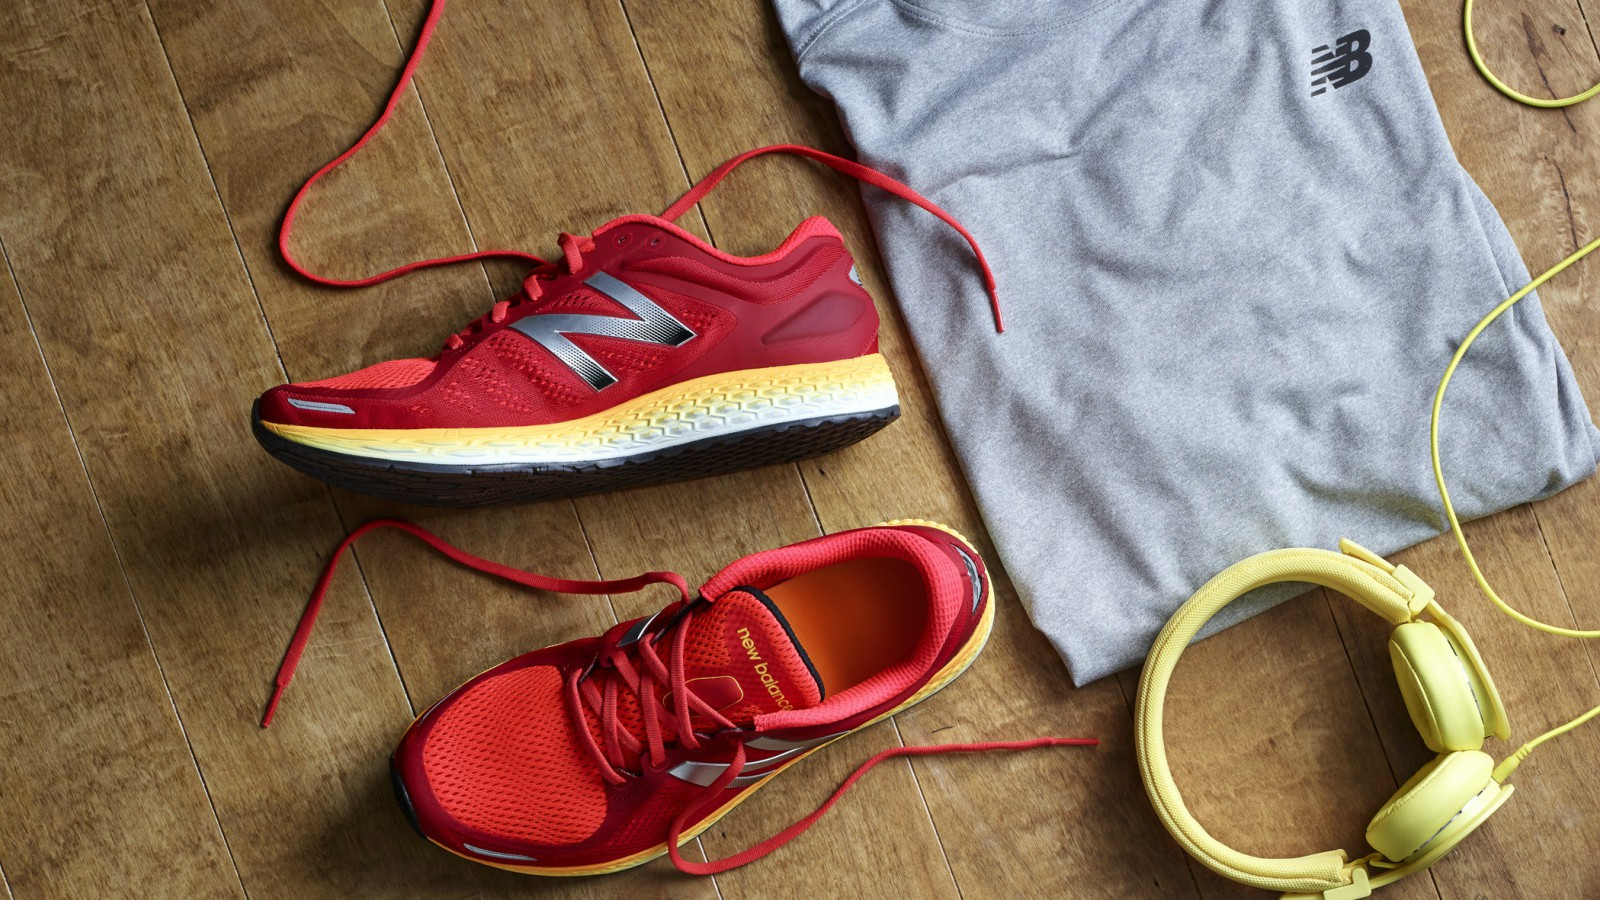 Princeton Hotel Features | New Balance Gear Lending